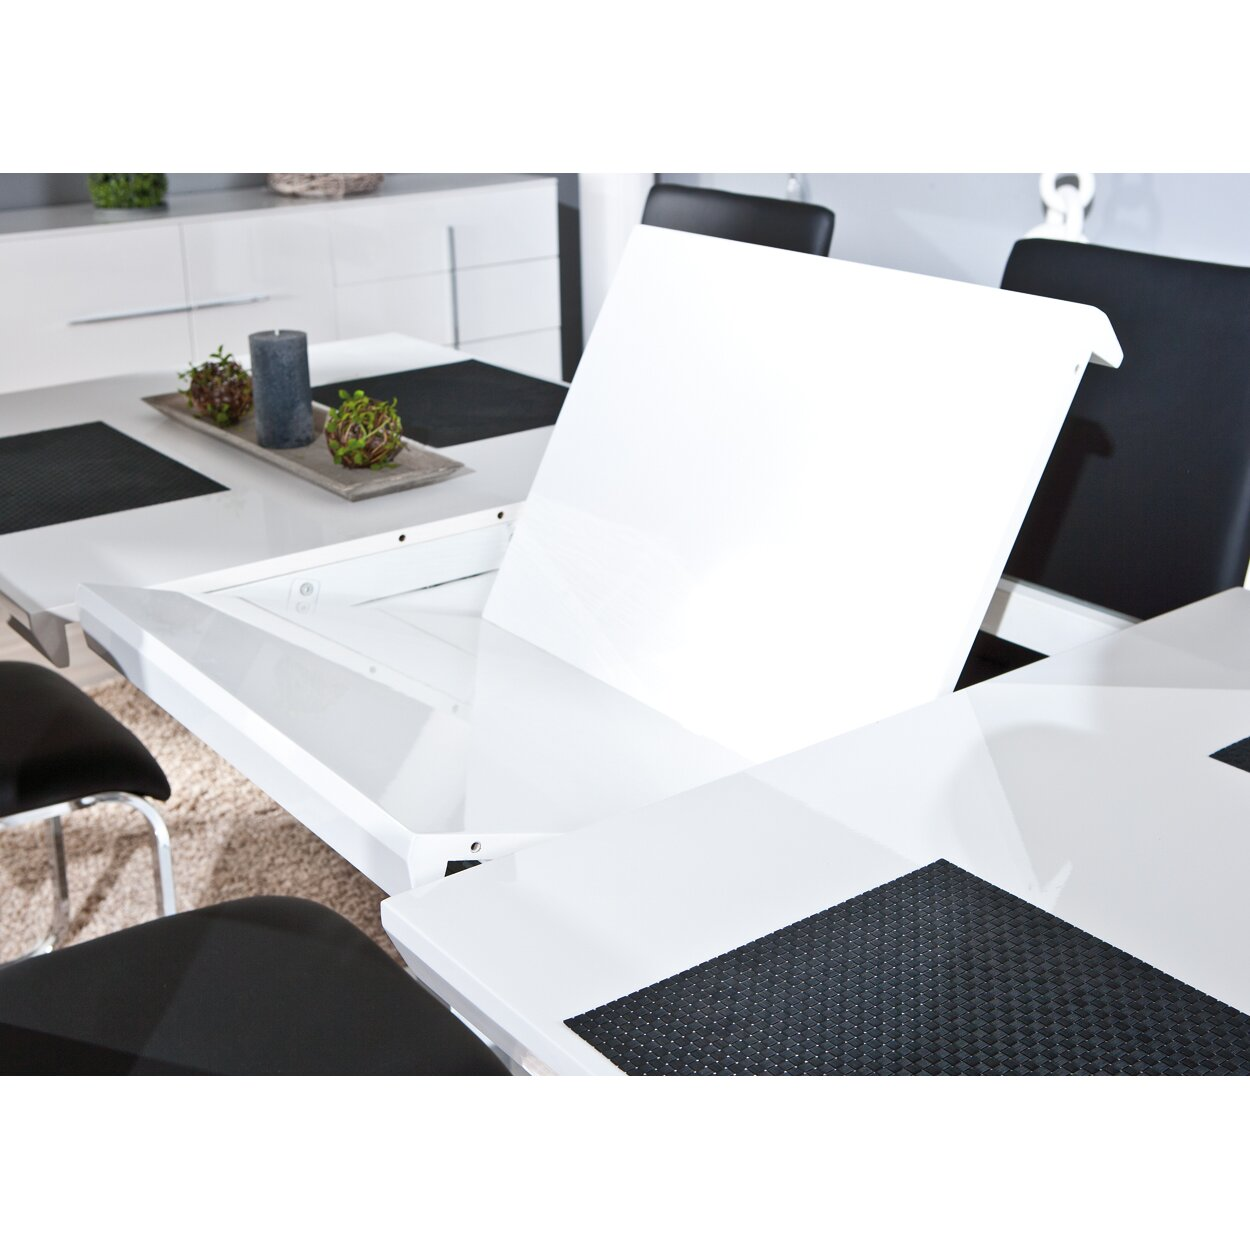 House Additions Edmonton Extendable Dining Table amp Reviews  : House Additions Edmonton Extendable Dining Table from www.wayfair.co.uk size 1250 x 1250 jpeg 181kB